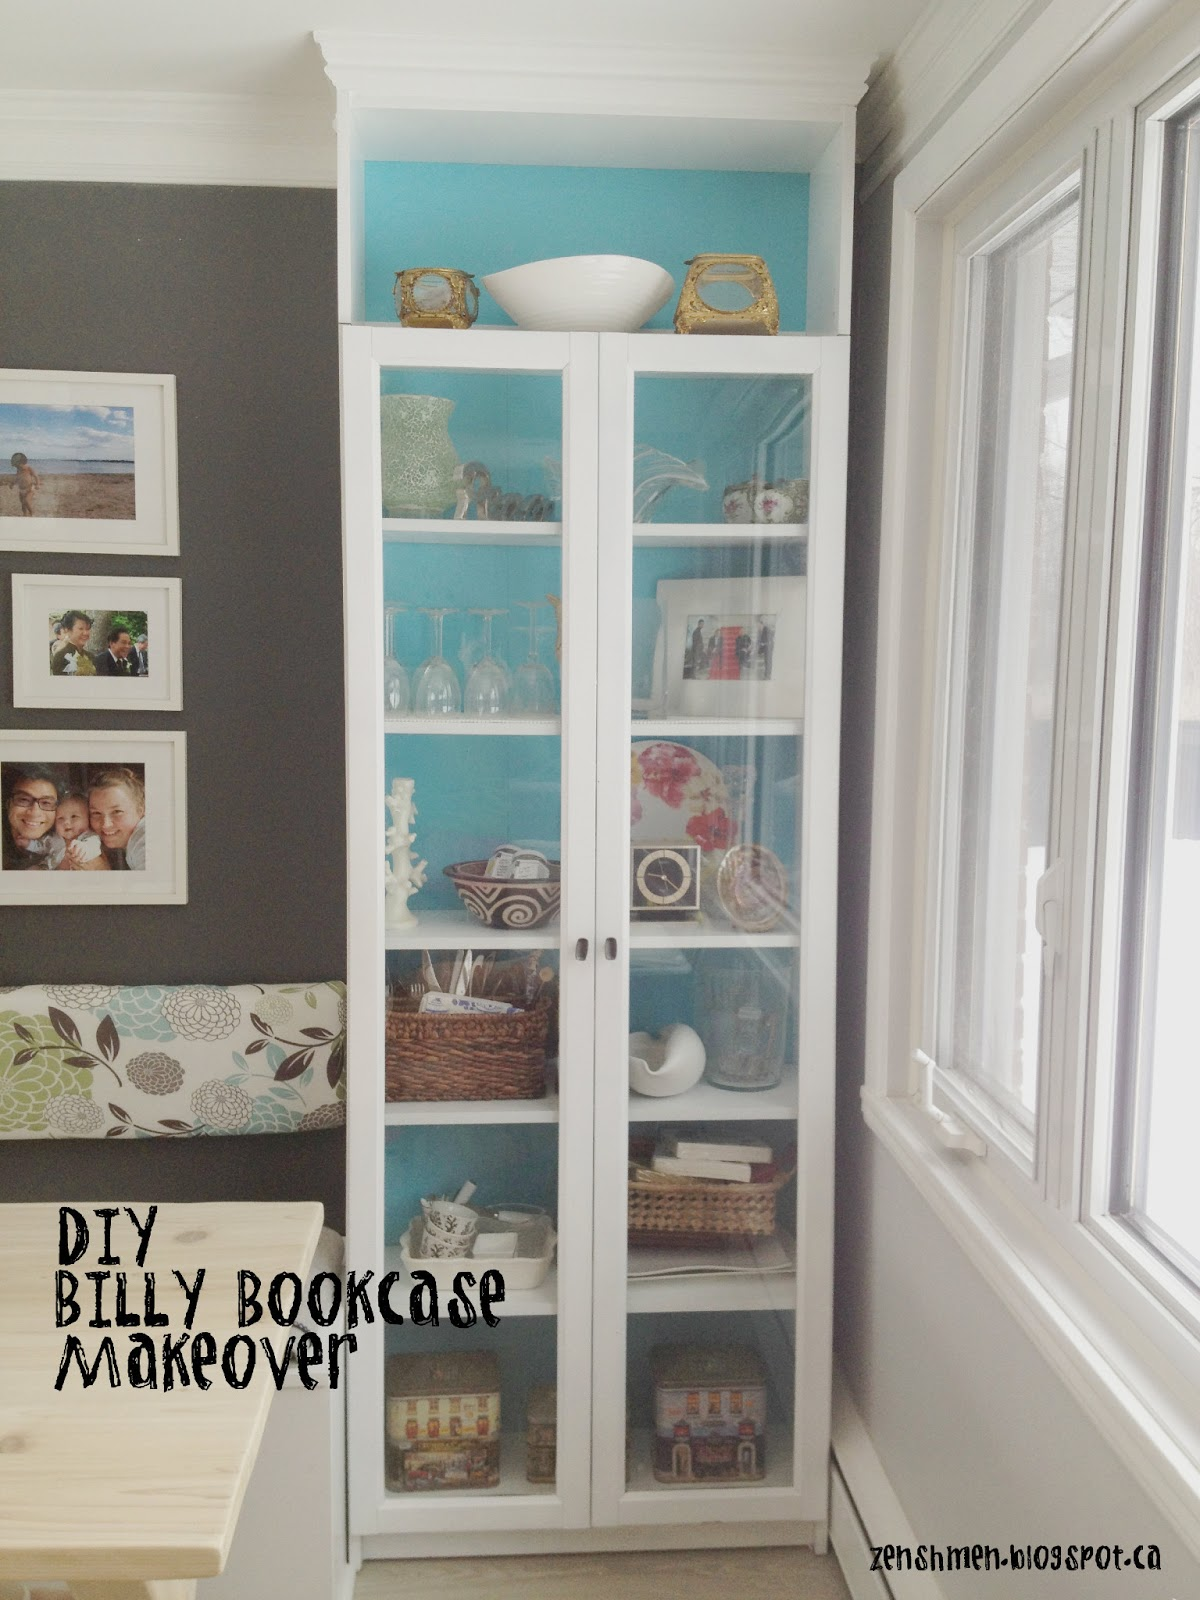 Diy Billy Bookcase Ikea Home Decor